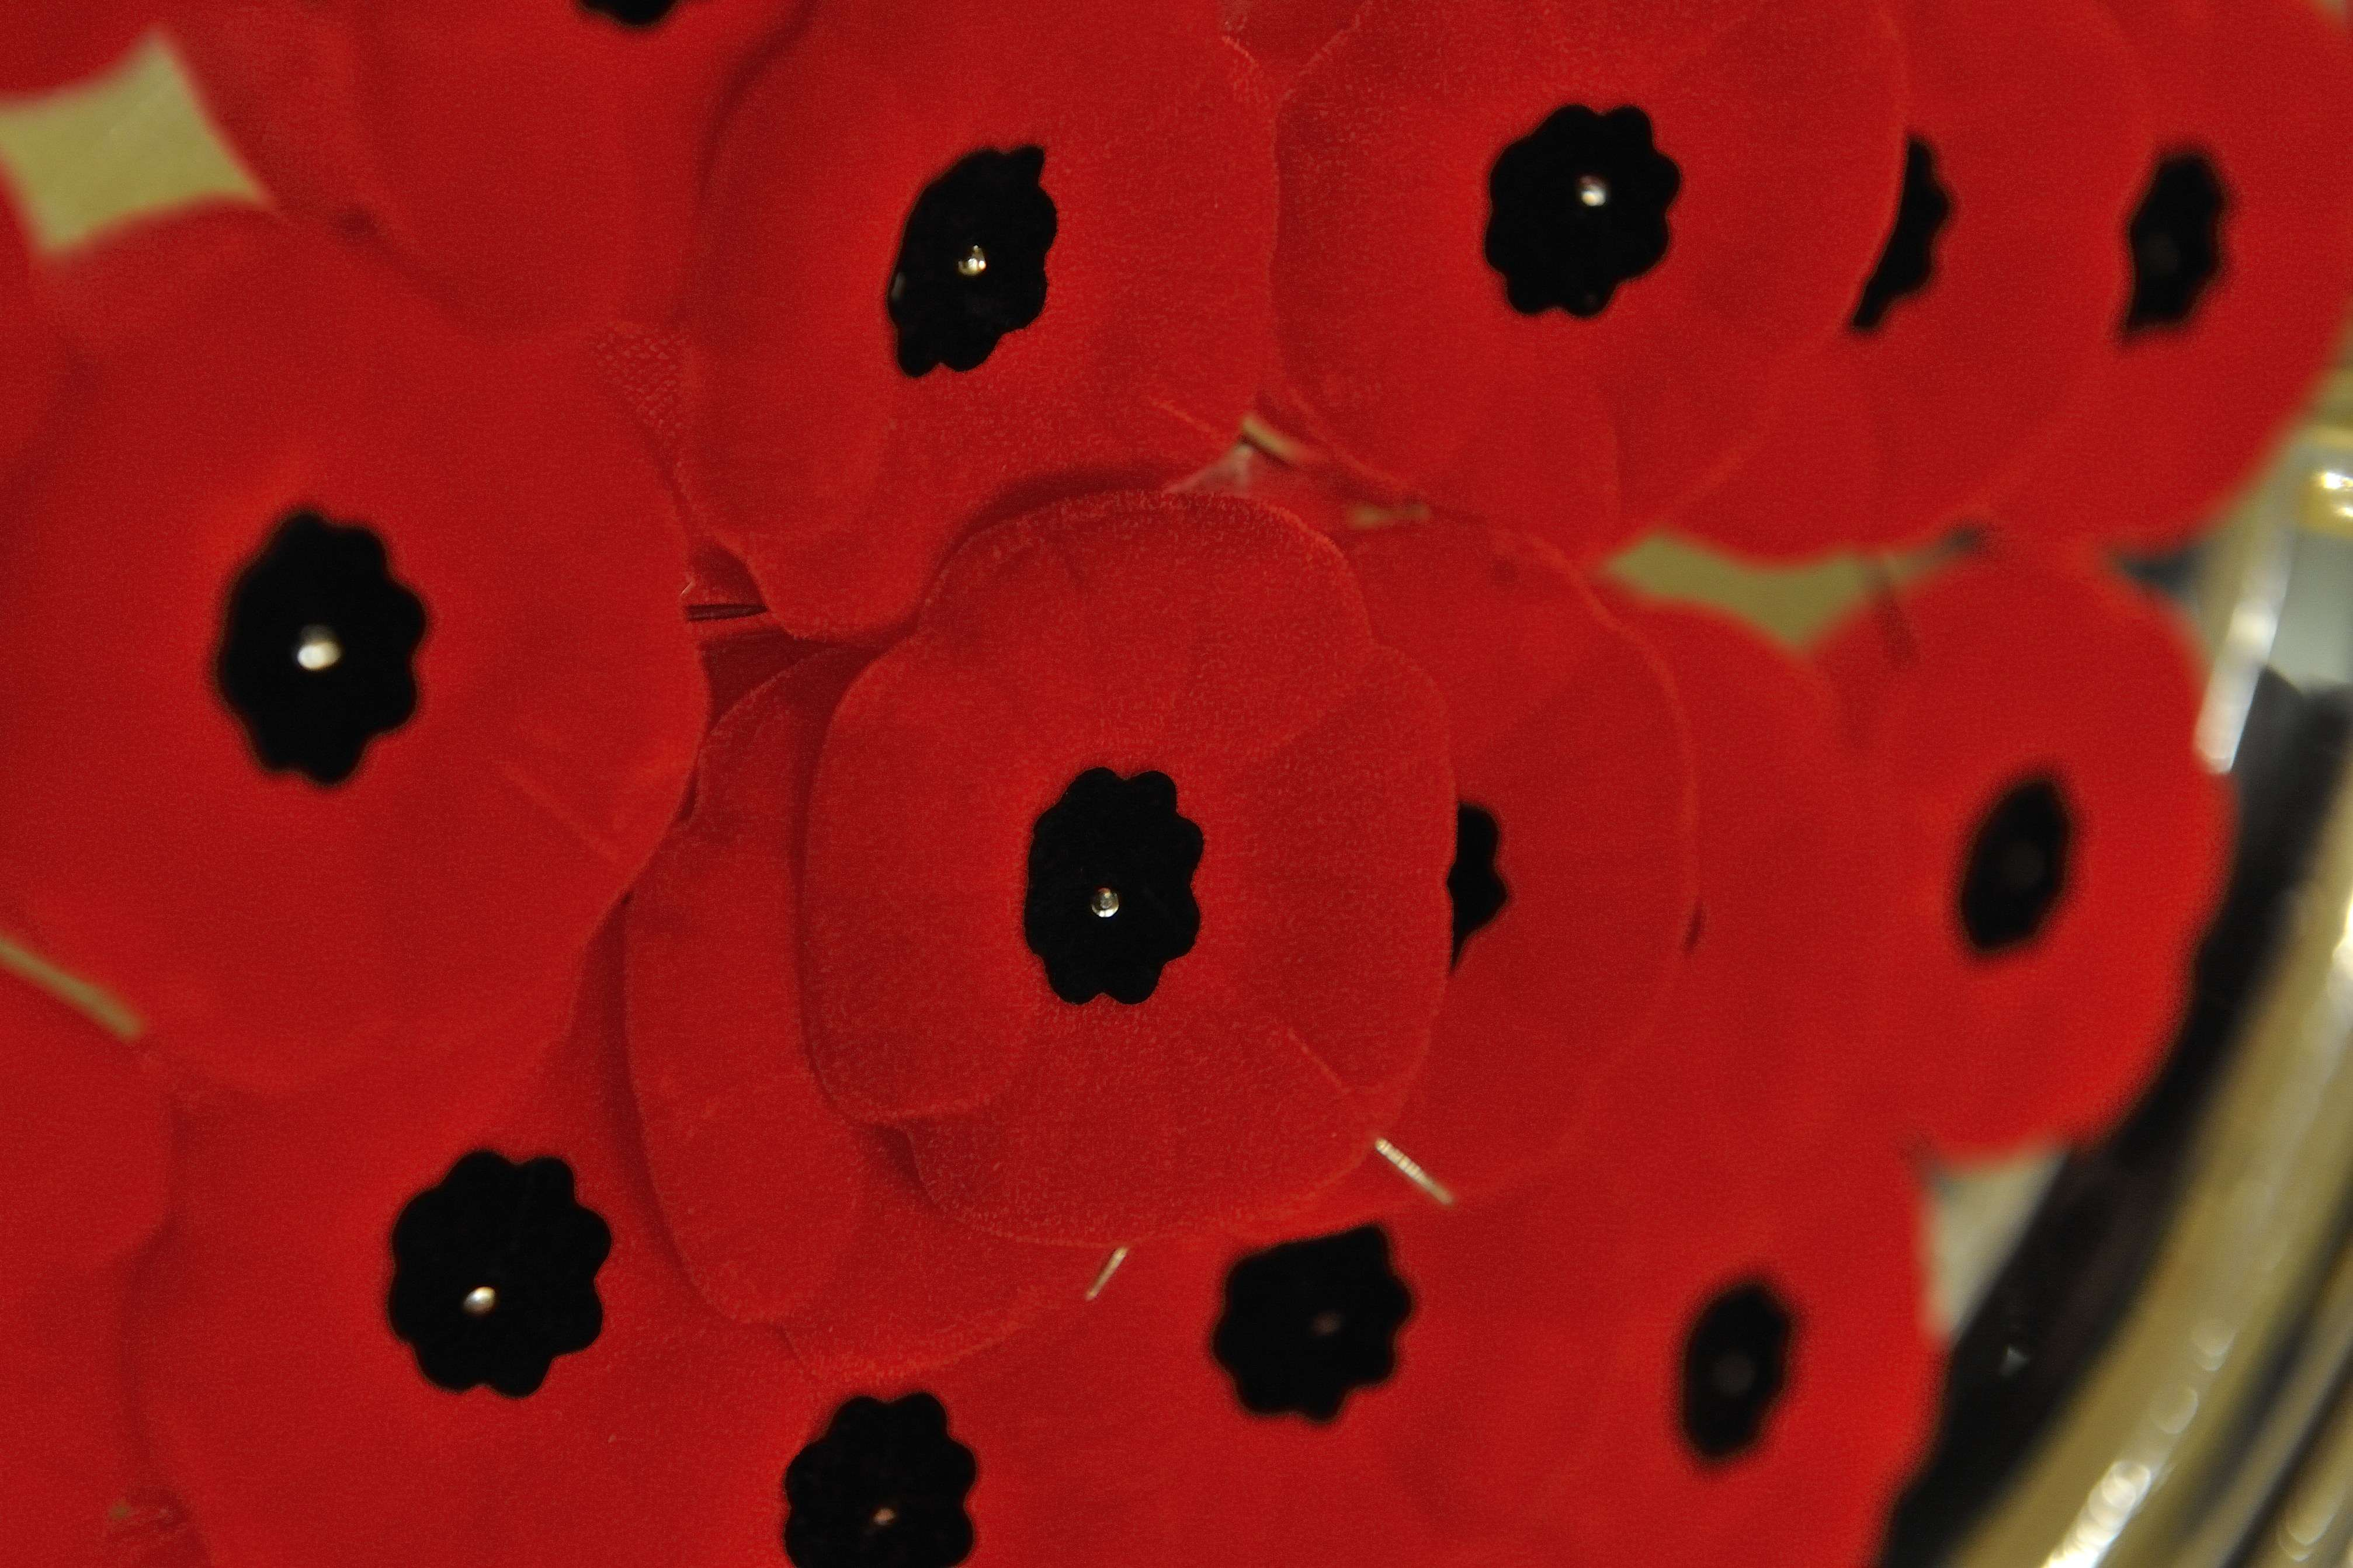 Poppies will be available to the general public beginning October 26, 2012.